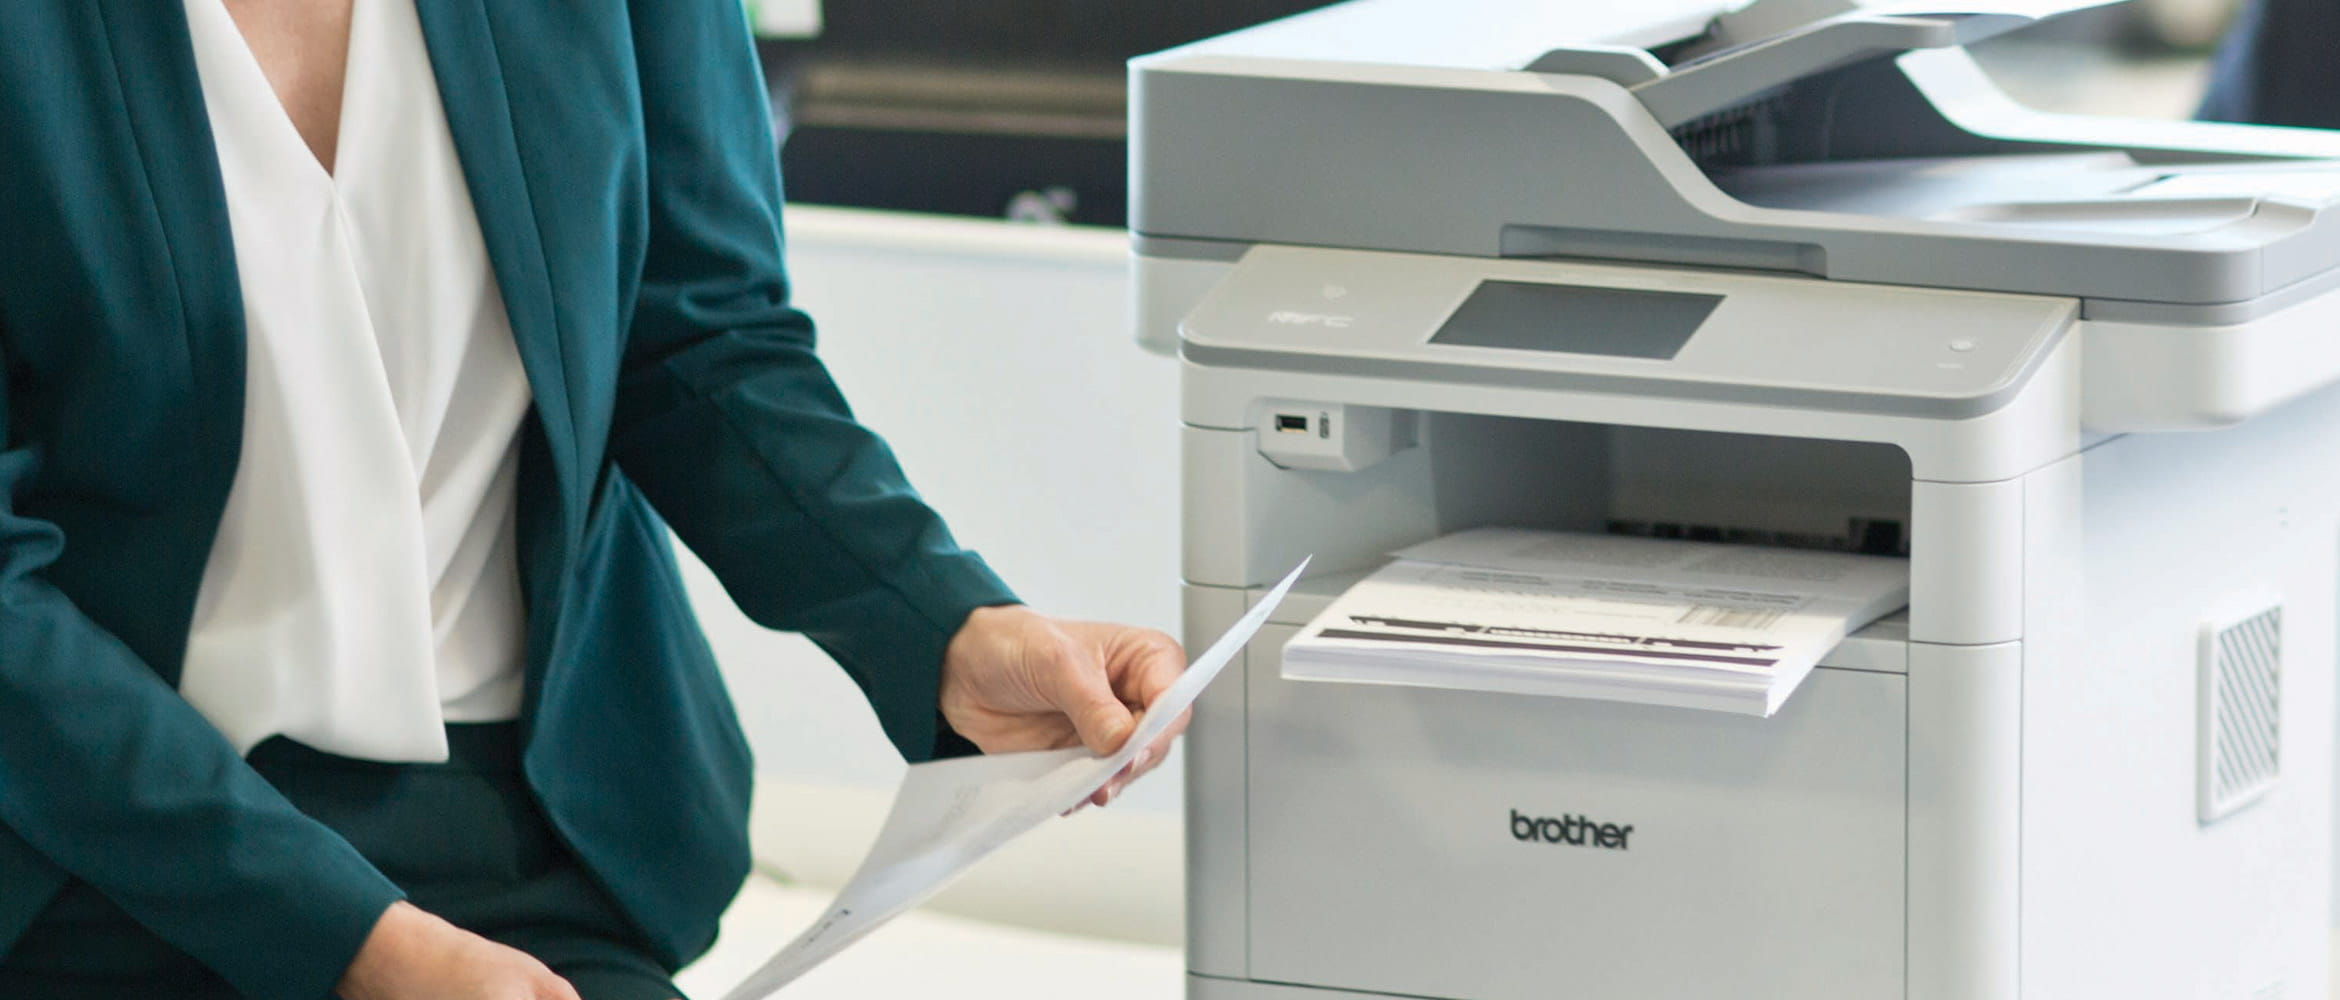 Woman with Brother office printer